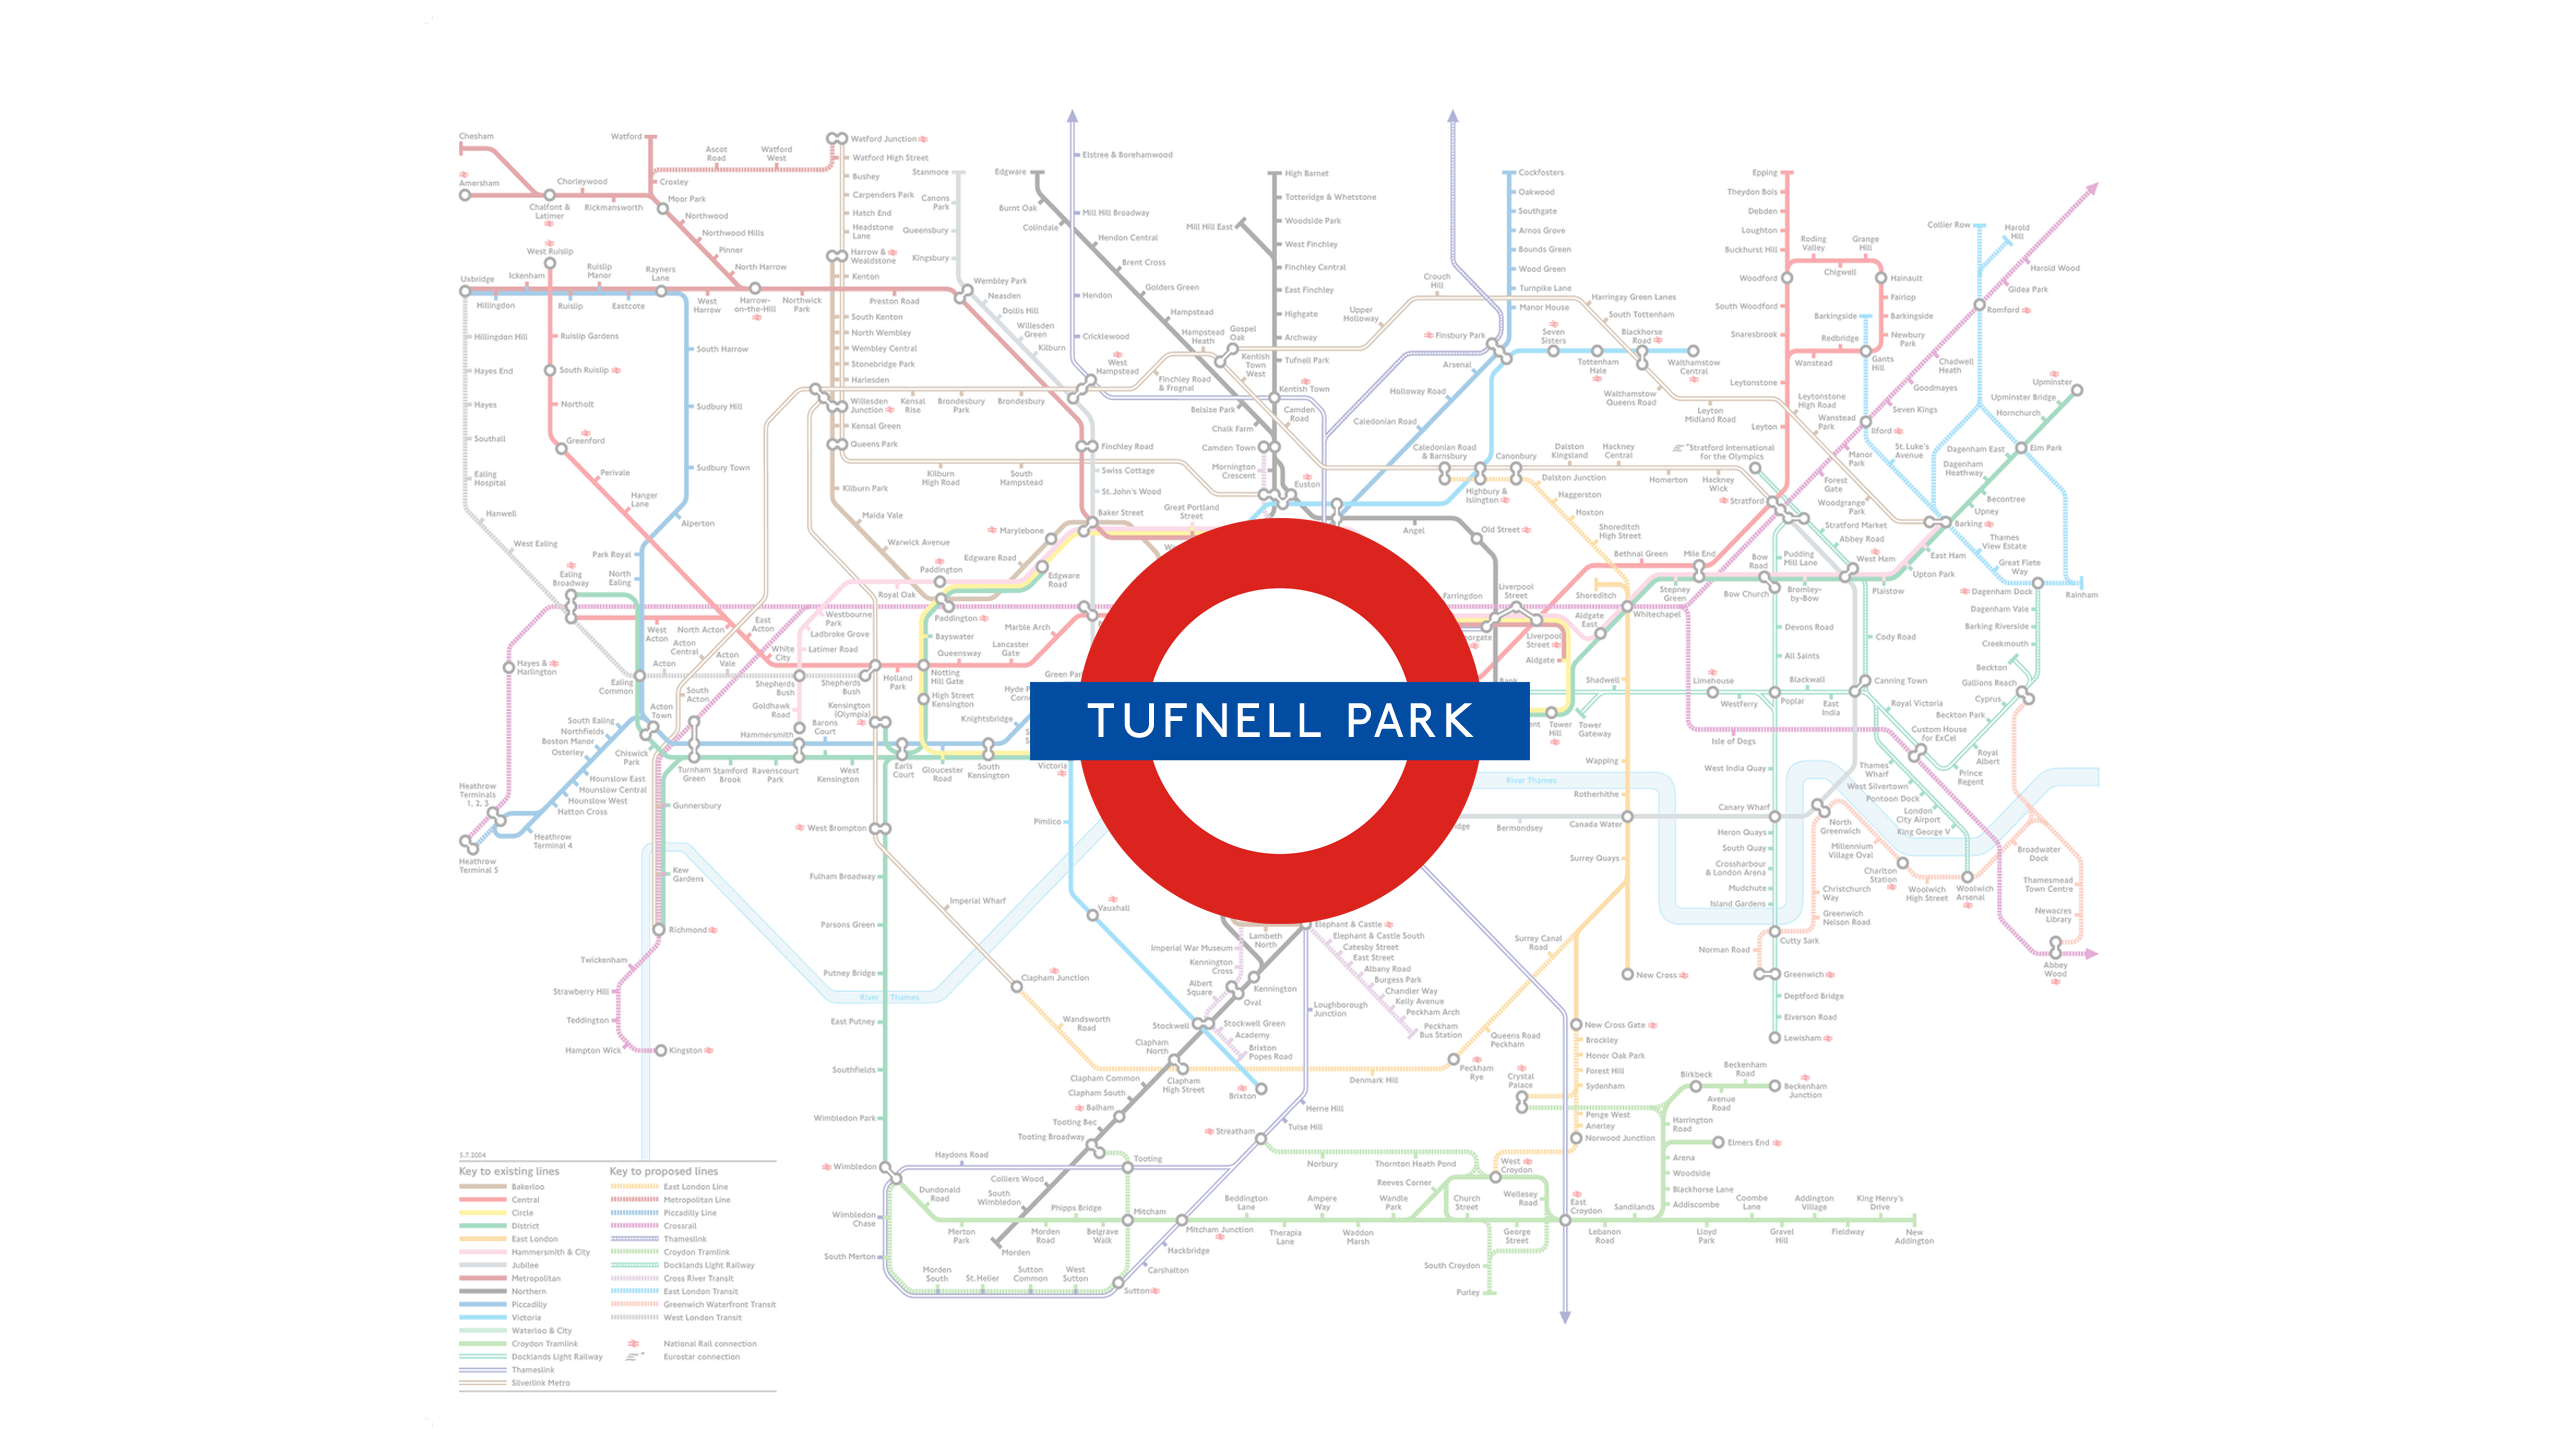 Tufnell Park (Map)